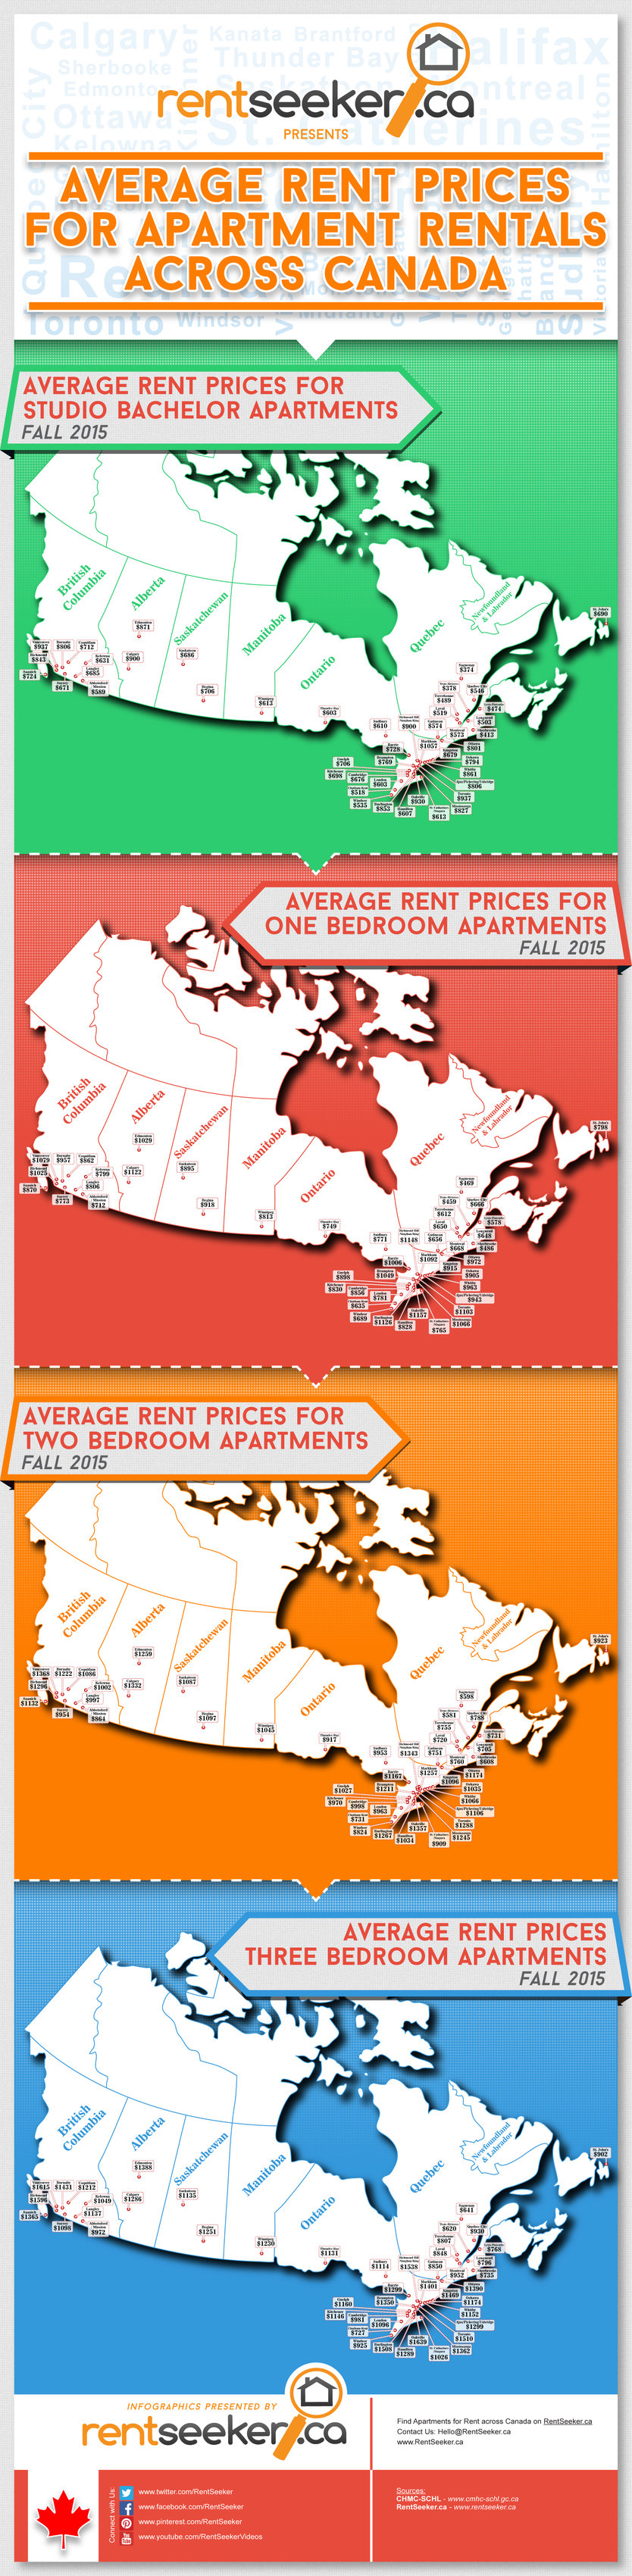 rsz_rental-costs-for-apartments-across-canada-rentseekerca_